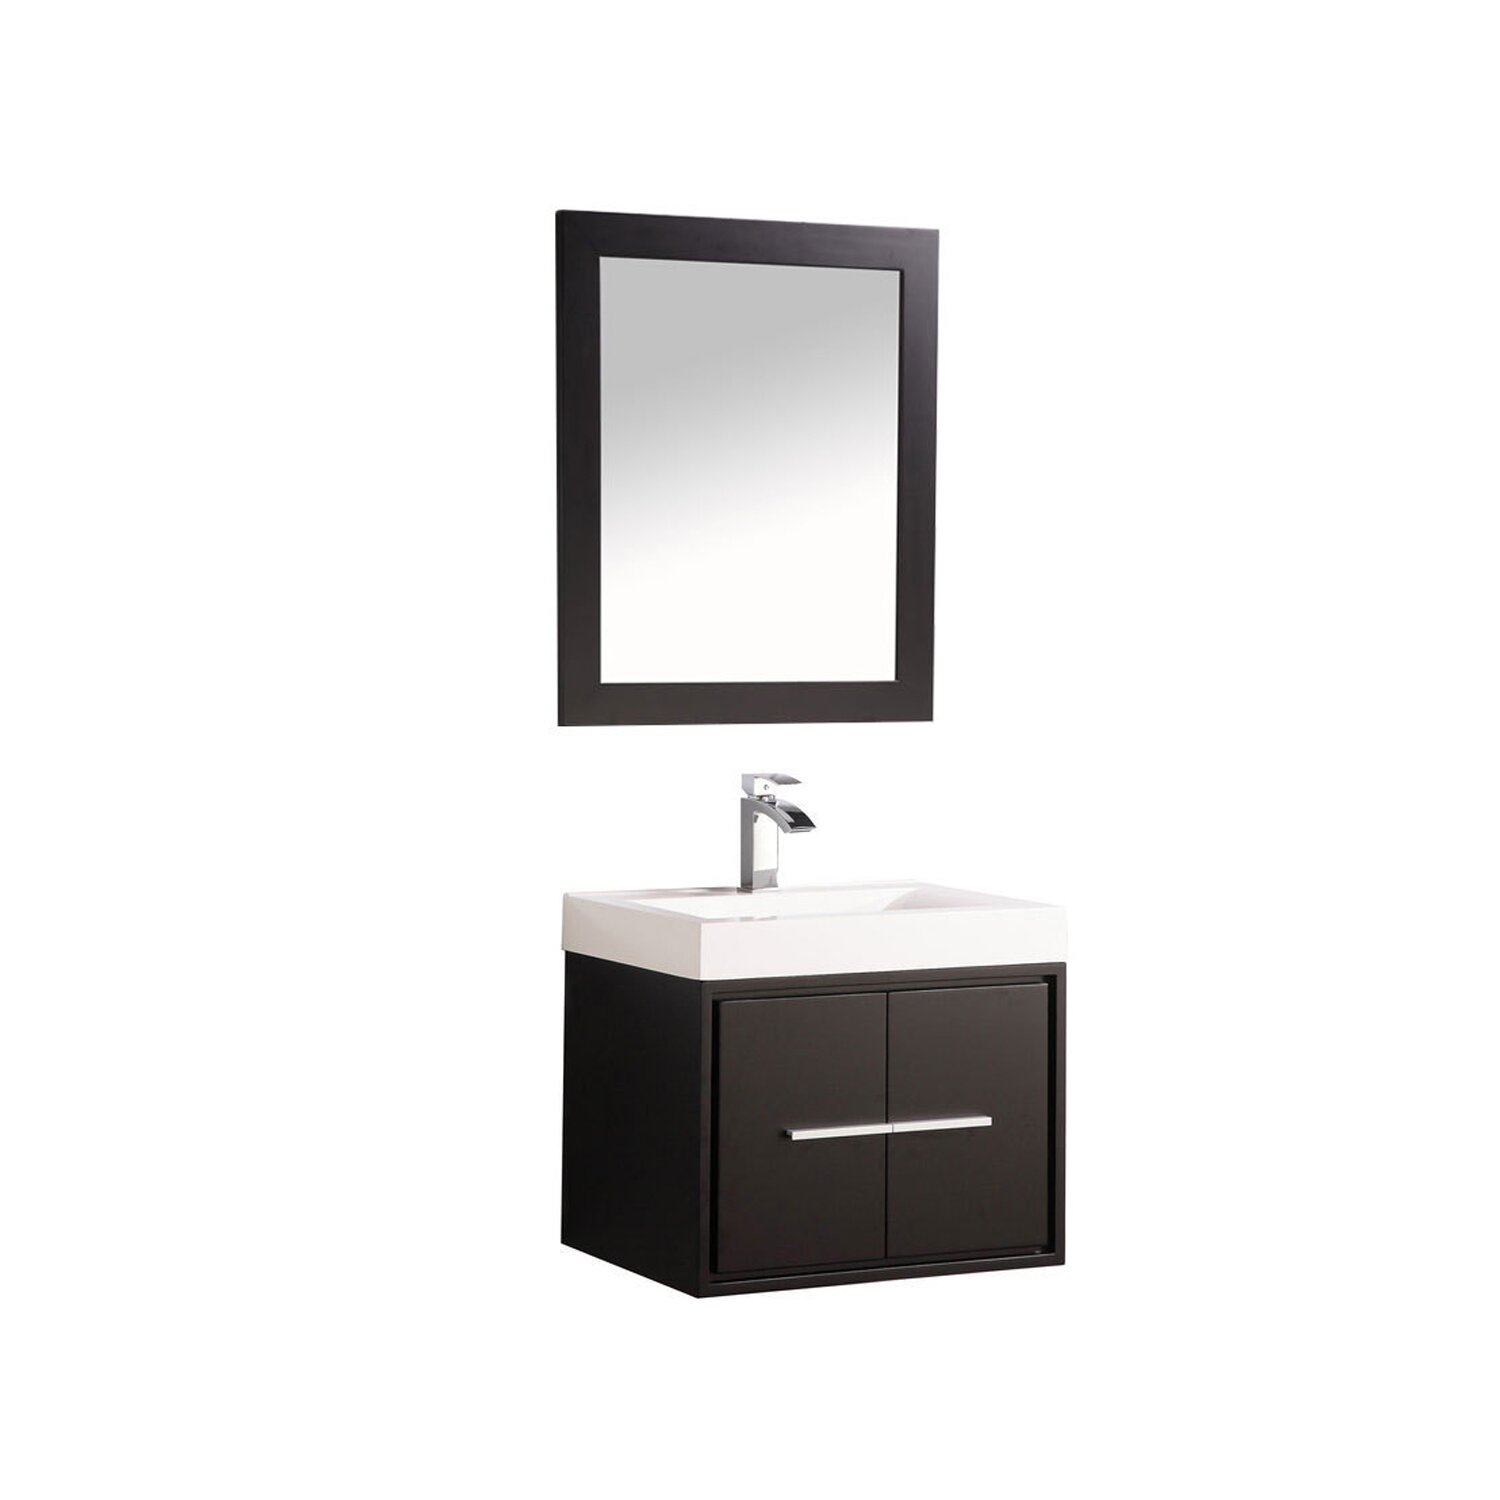 Mtdvanities cypress 24 single floating bathroom vanity Floating bathroom vanity